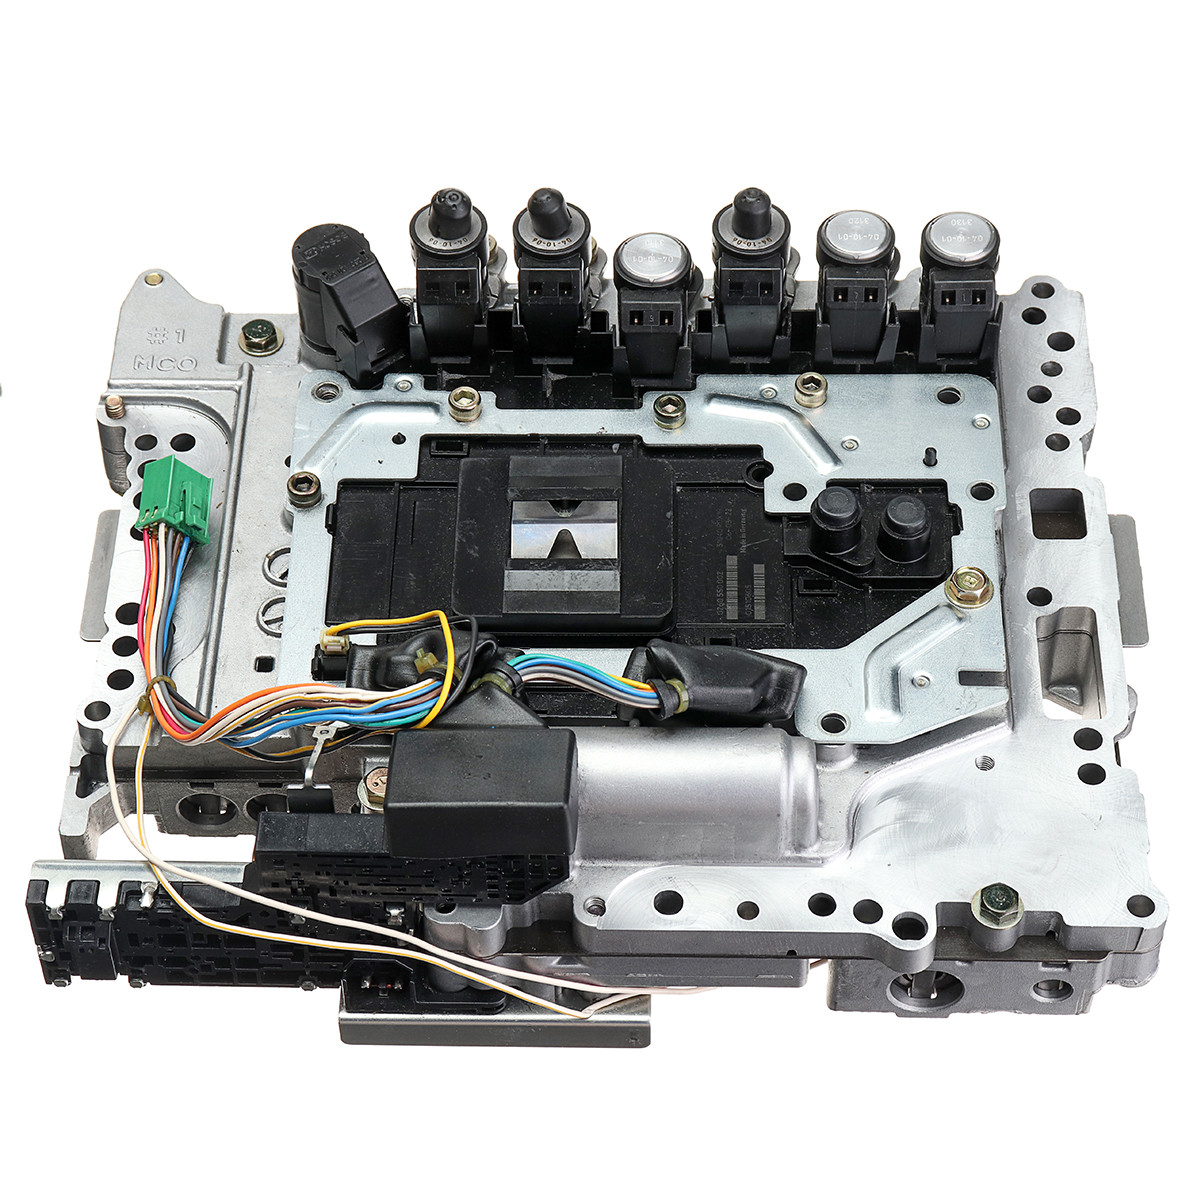 RE5R05A Valve Body Fits for Nissan Xterra Pathfinder/Armada